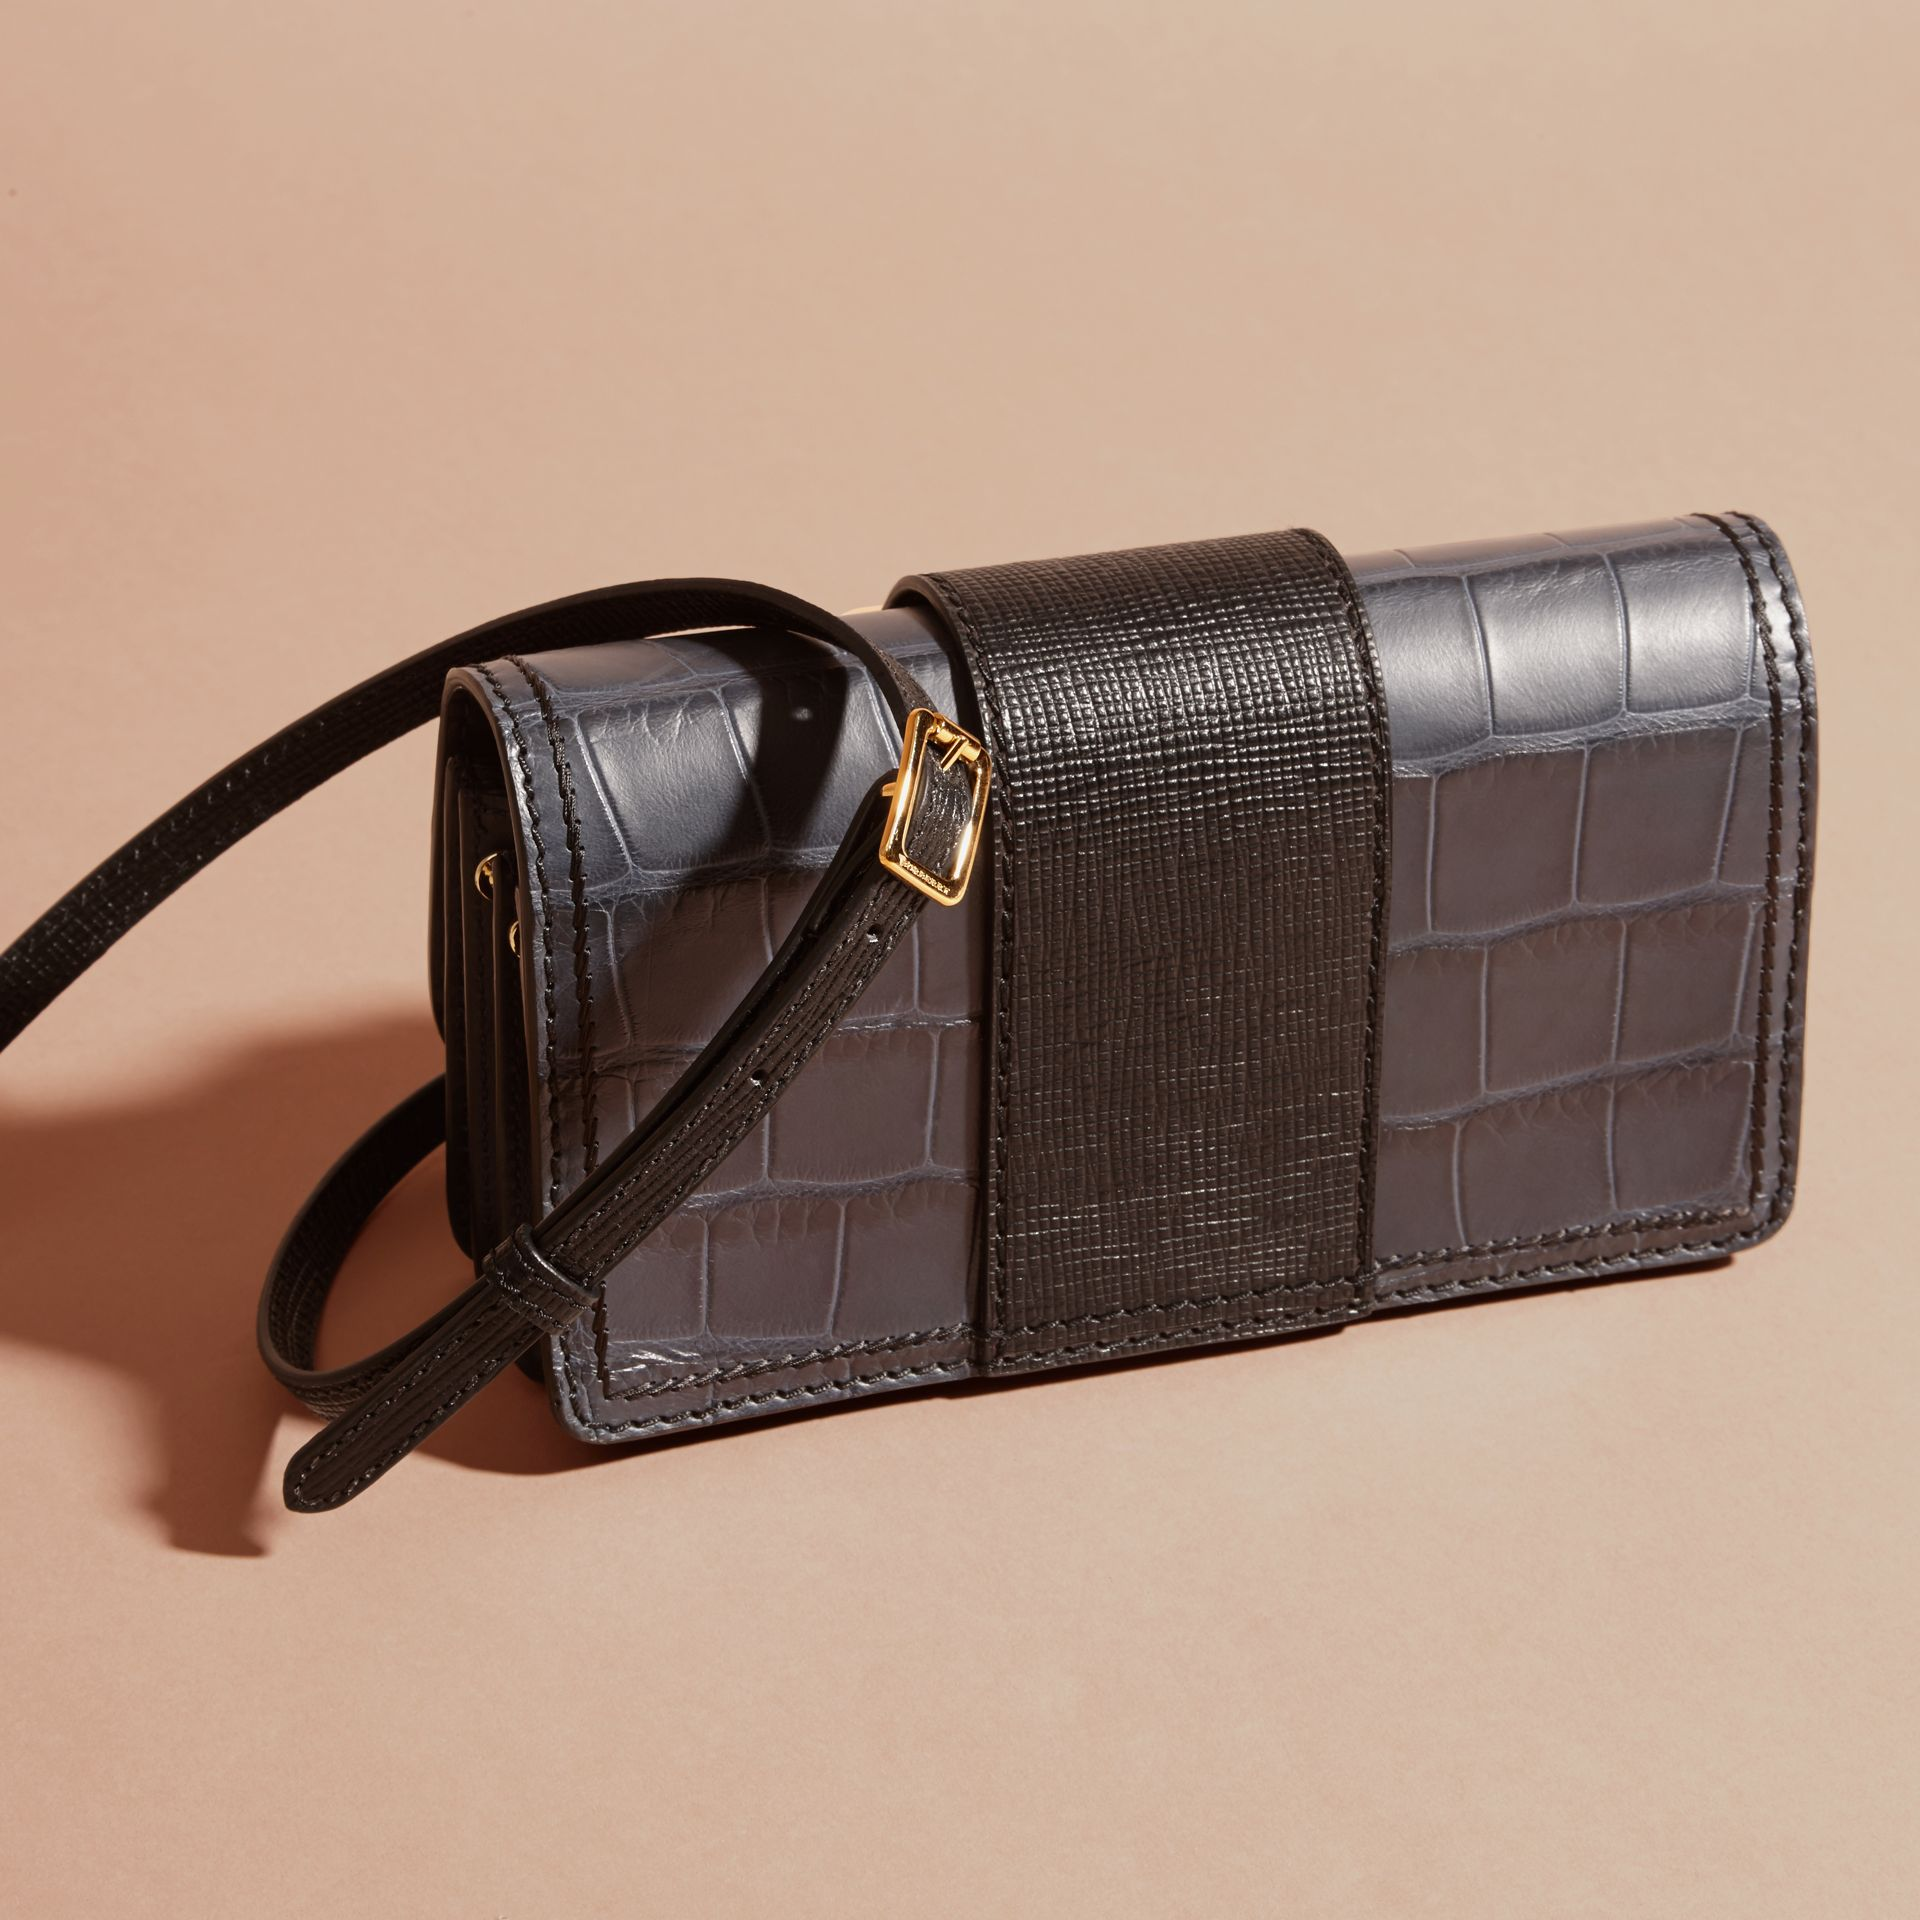 Petit sac The Buckle en alligator et cuir Marine/noir - photo de la galerie 5